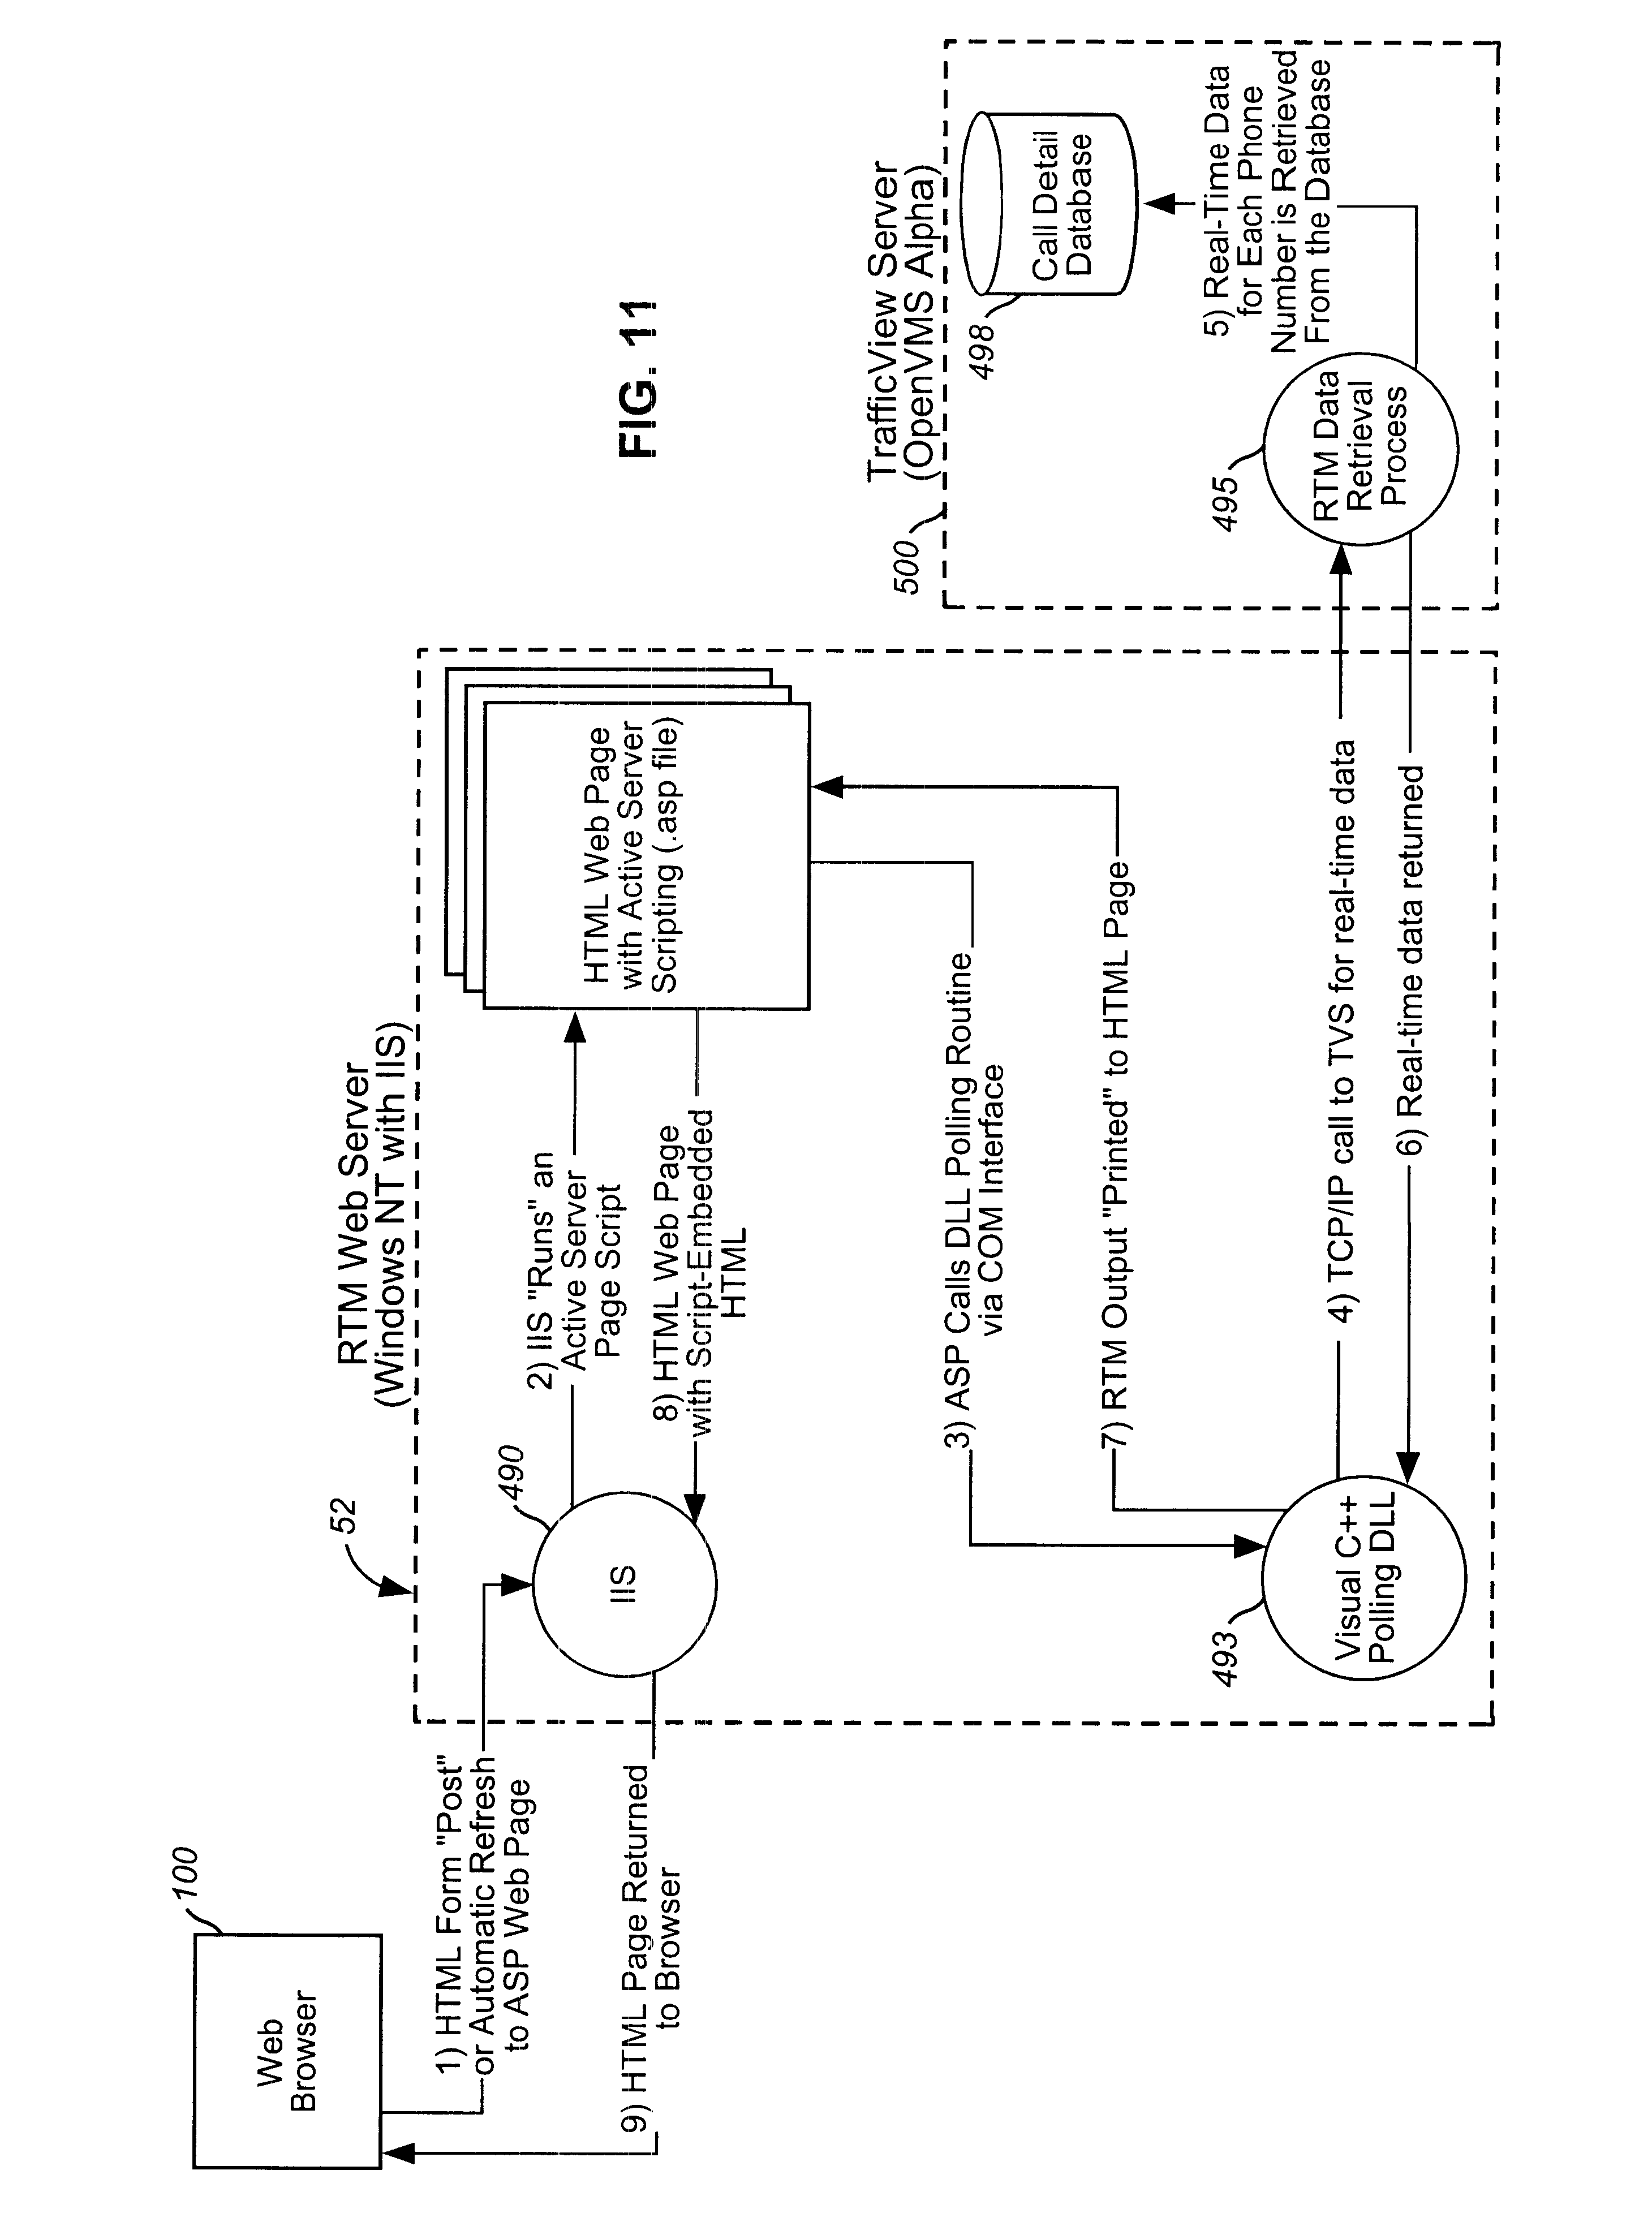 Us6470386b1 Integrated Proxy Interface For Web Based 555 Timer Helpers Schematic Telecommunications Management Tools Google Patents